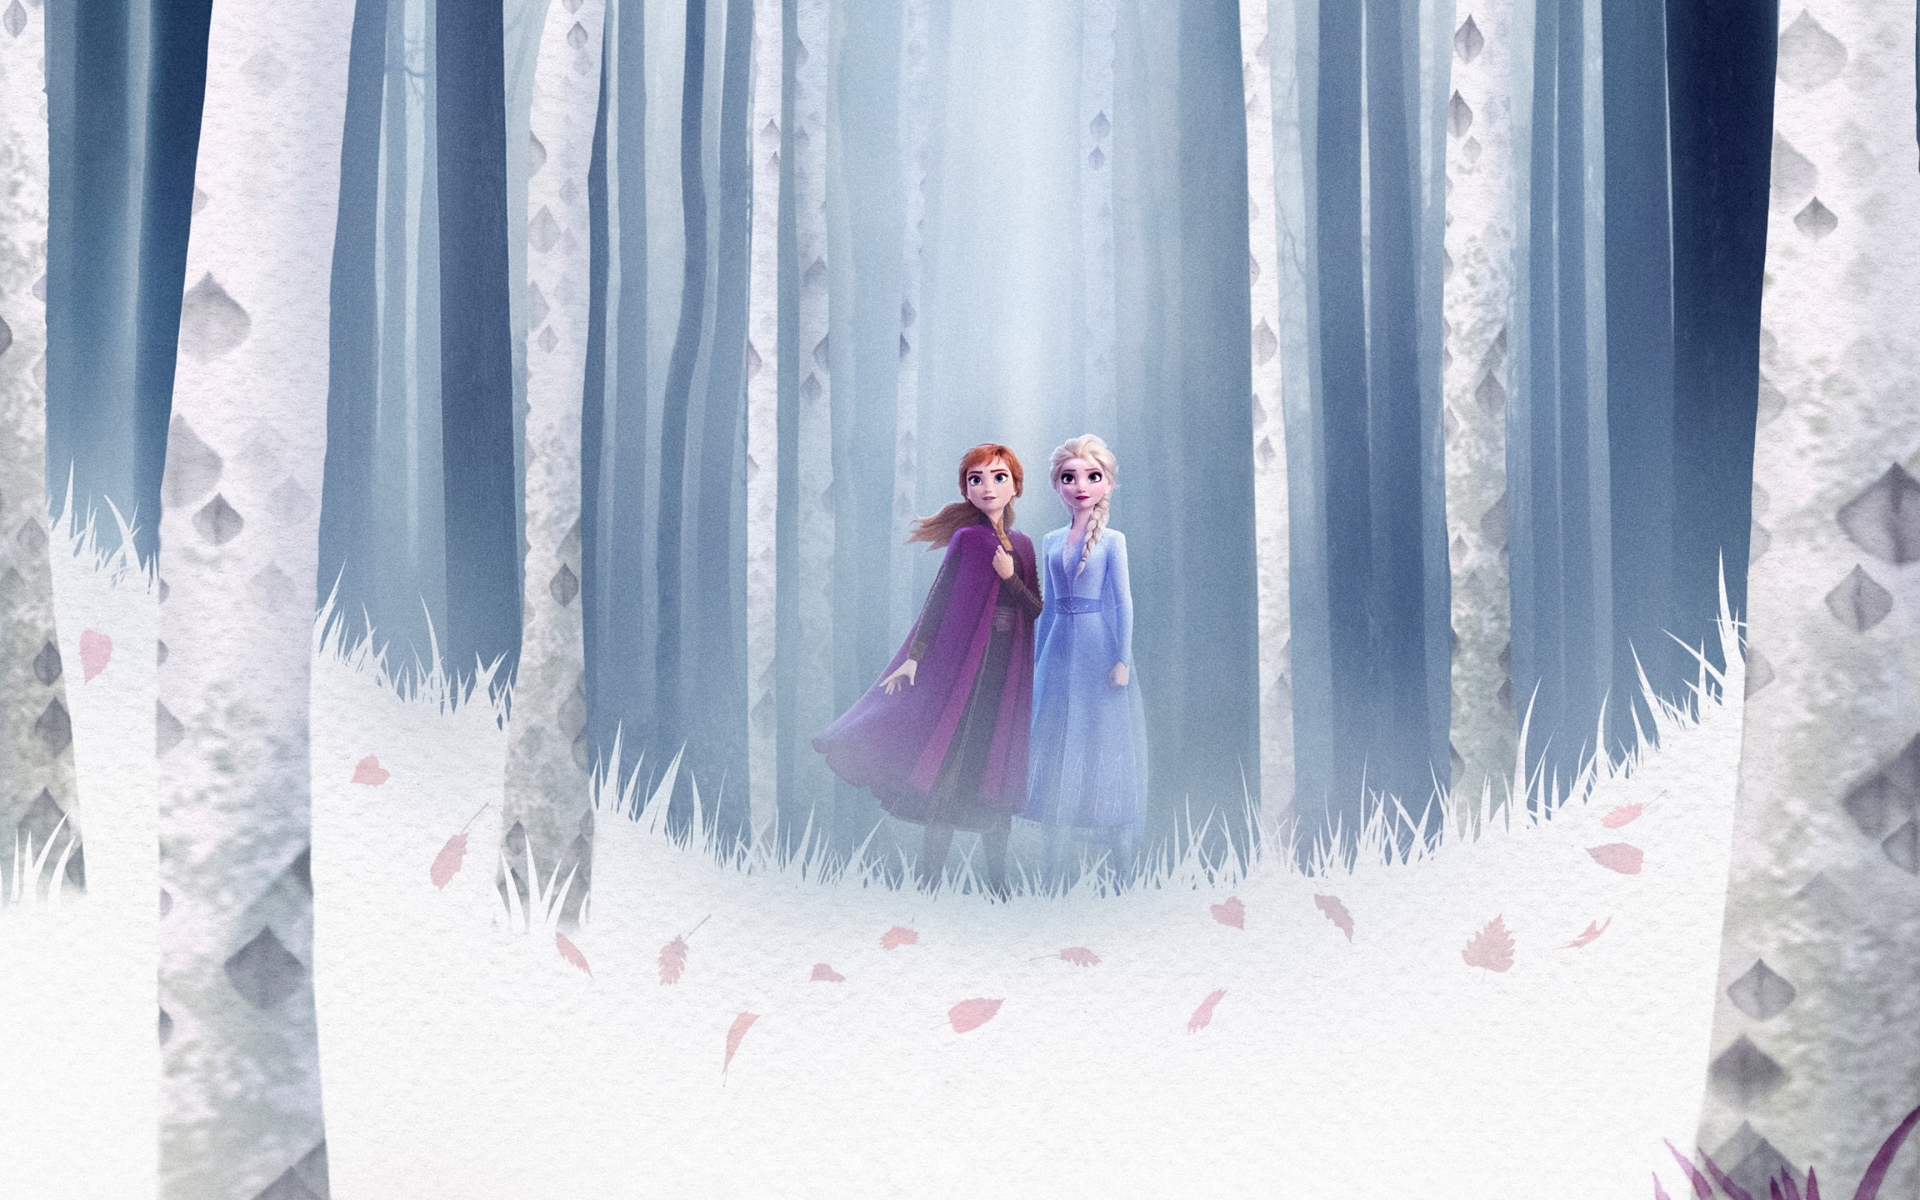 Frozen 2 Wallpaper